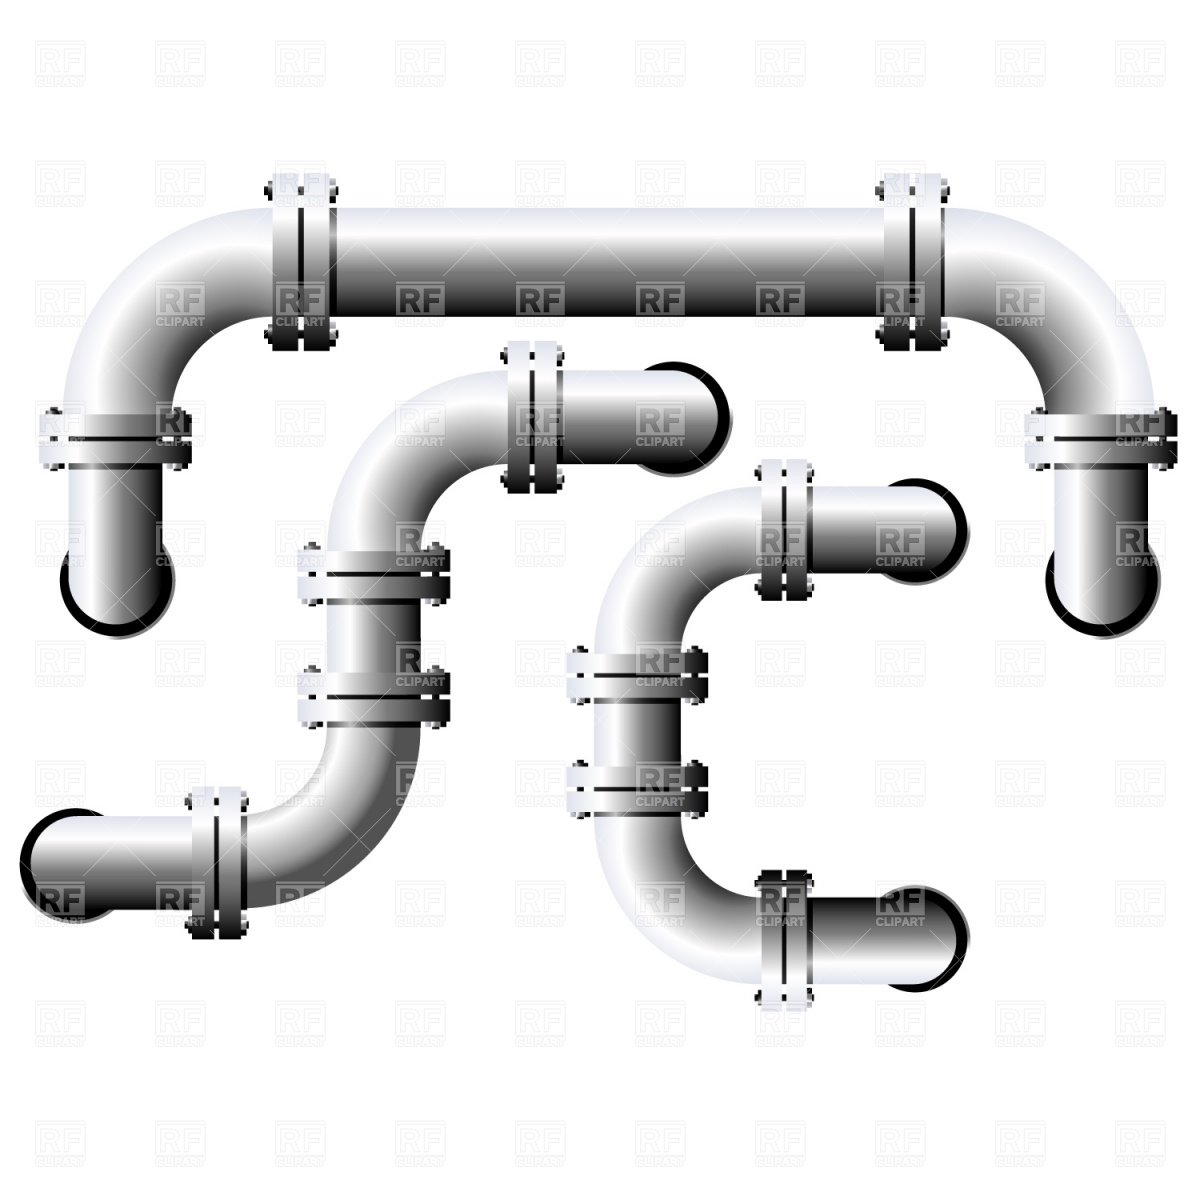 Free plumbing pipes clipart image free stock Plumbing Pipe Clipart - Clipart Kid image free stock